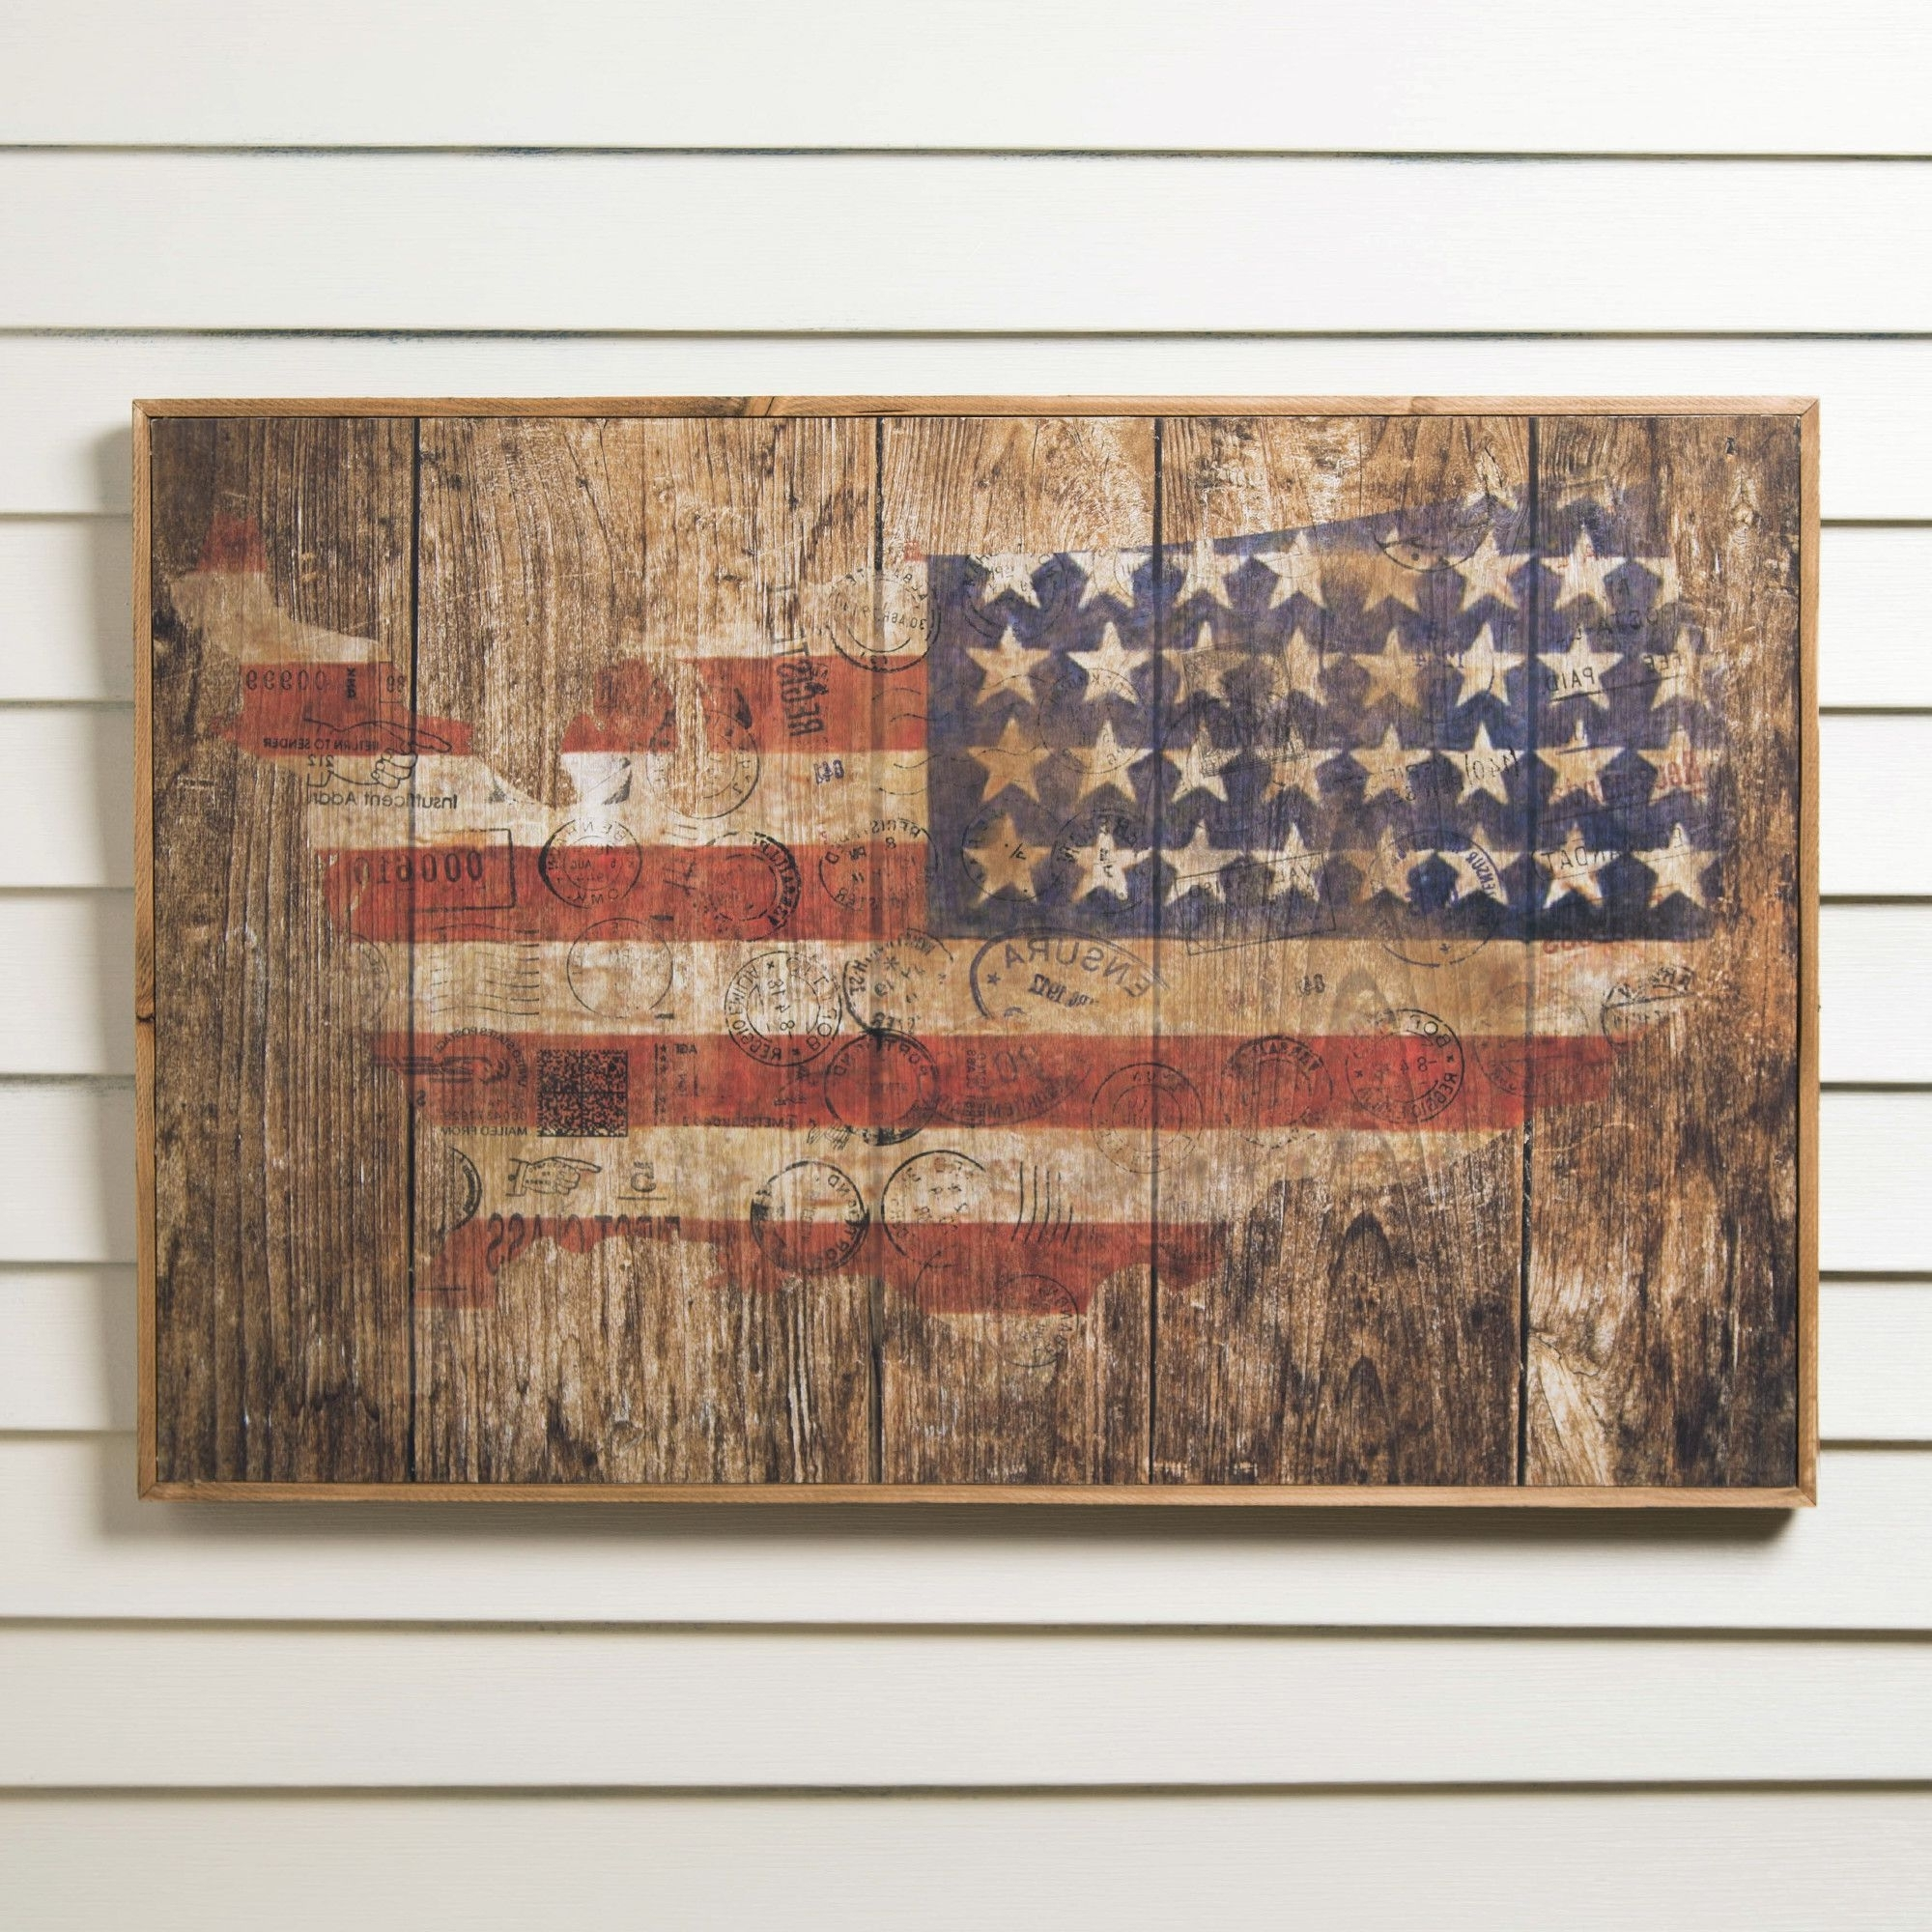 Rustic Charm, Birch Lane And Birch Throughout Famous Rustic American Flag Wall Art (View 11 of 15)